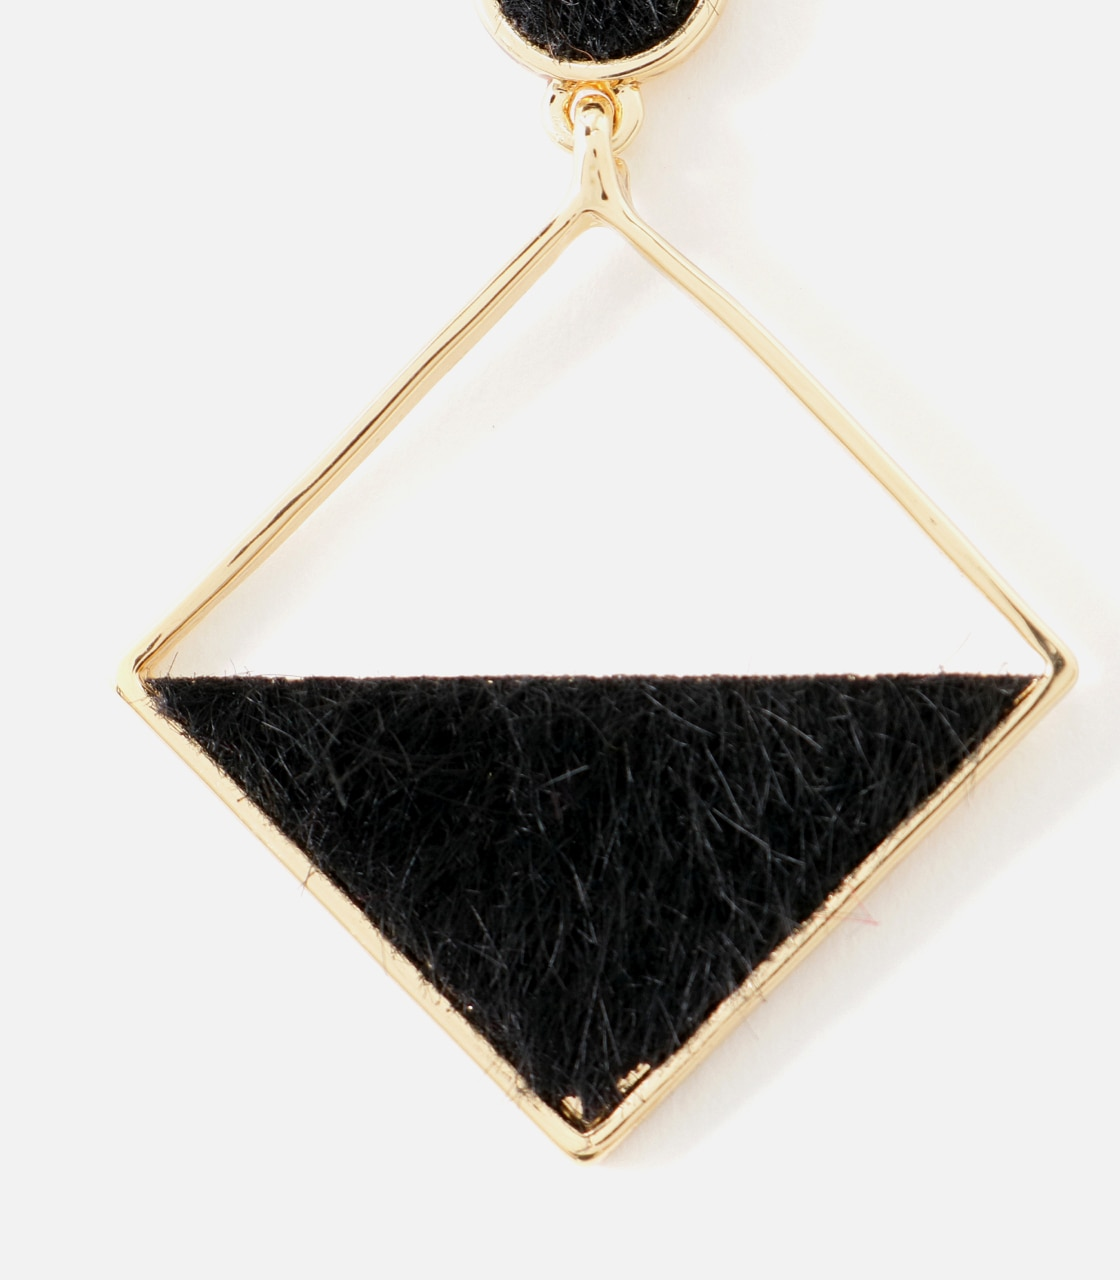 【AZUL BY MOUSSY】フェイクファースクエアピアス 詳細画像 BLK 3